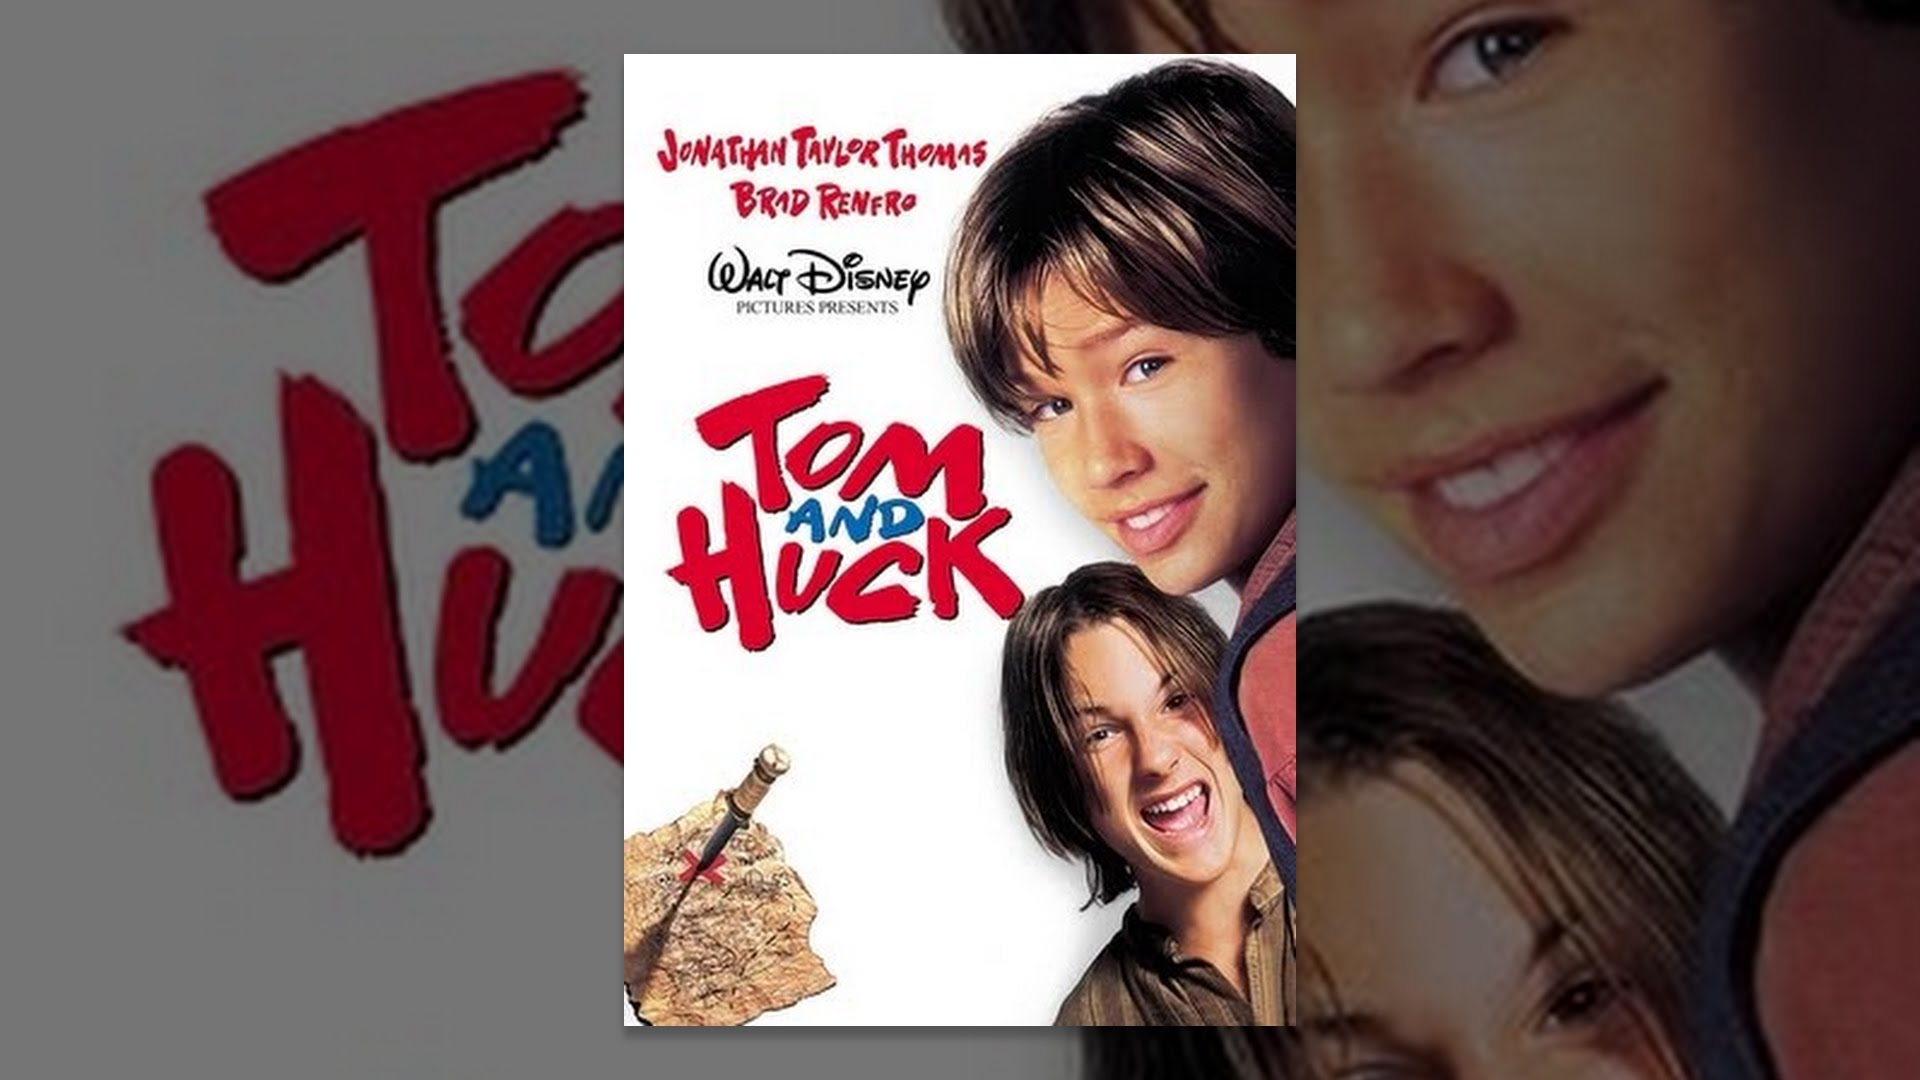 huck vs tom Tom and huck is a 1995 american adventure comedy-drama film based on mark  twain's novel the adventures of tom sawyer, and starring jonathan taylor.